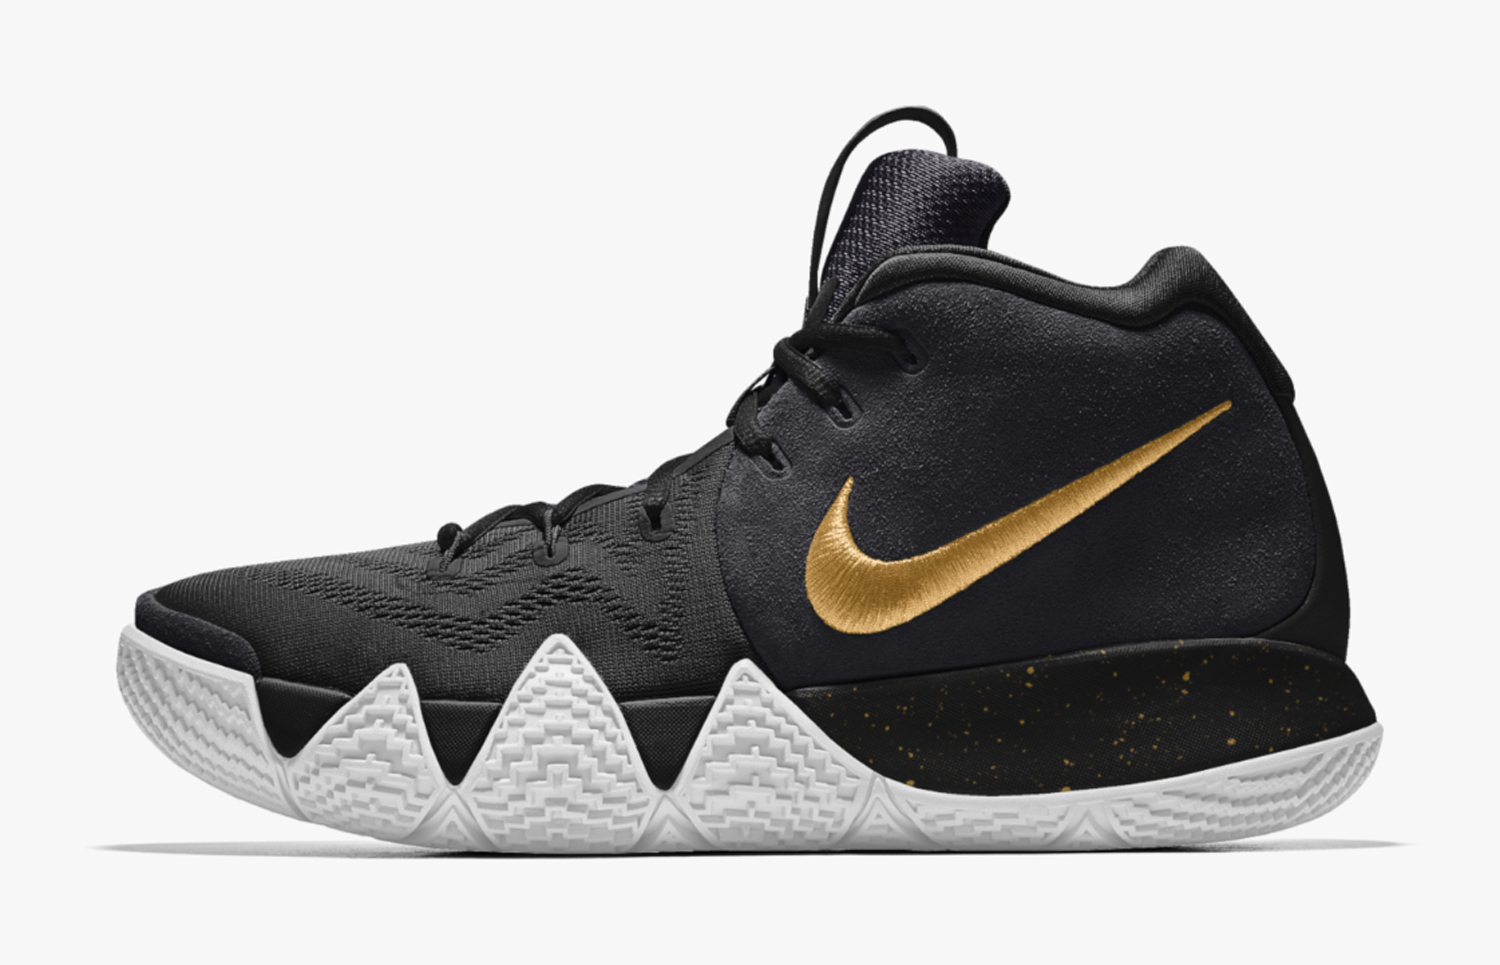 huge selection of 5e3f7 6b3d0 You Can Now Customize the Nike Kyrie 4 on NIKEiD - WearTesters